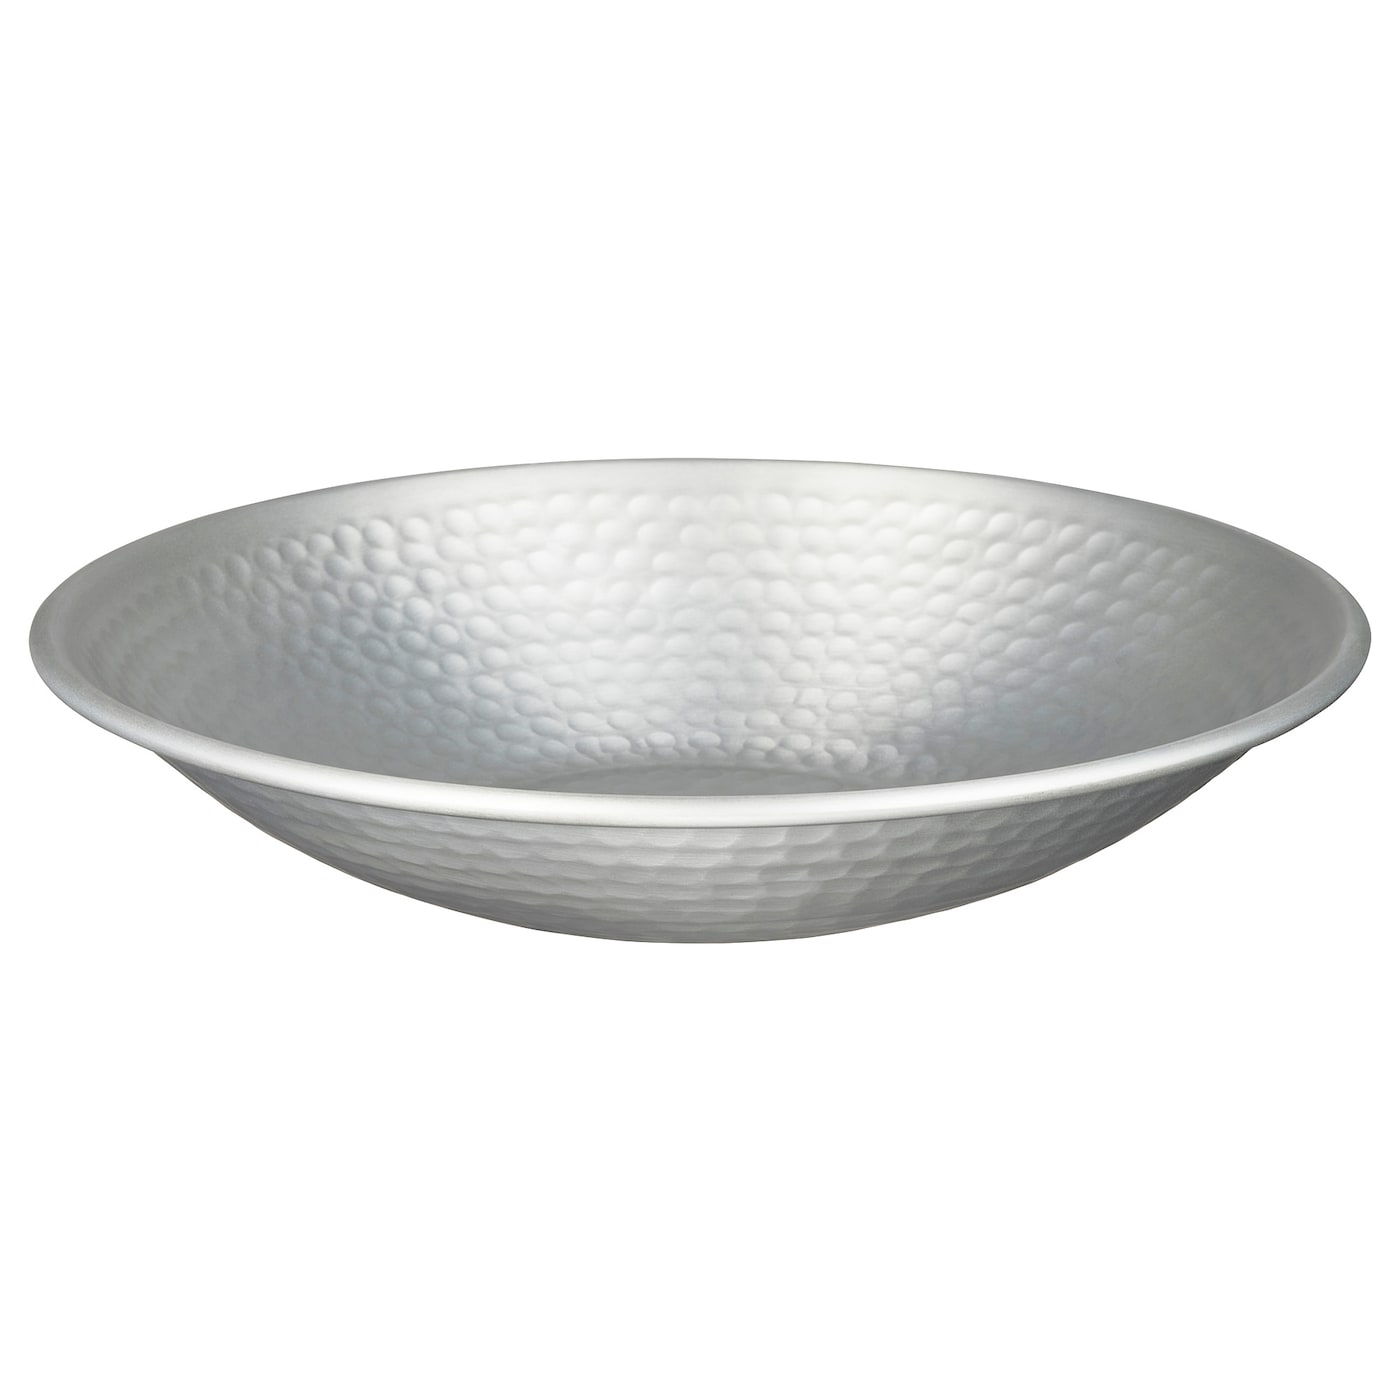 Imax Kian Decorative Bowl 25477